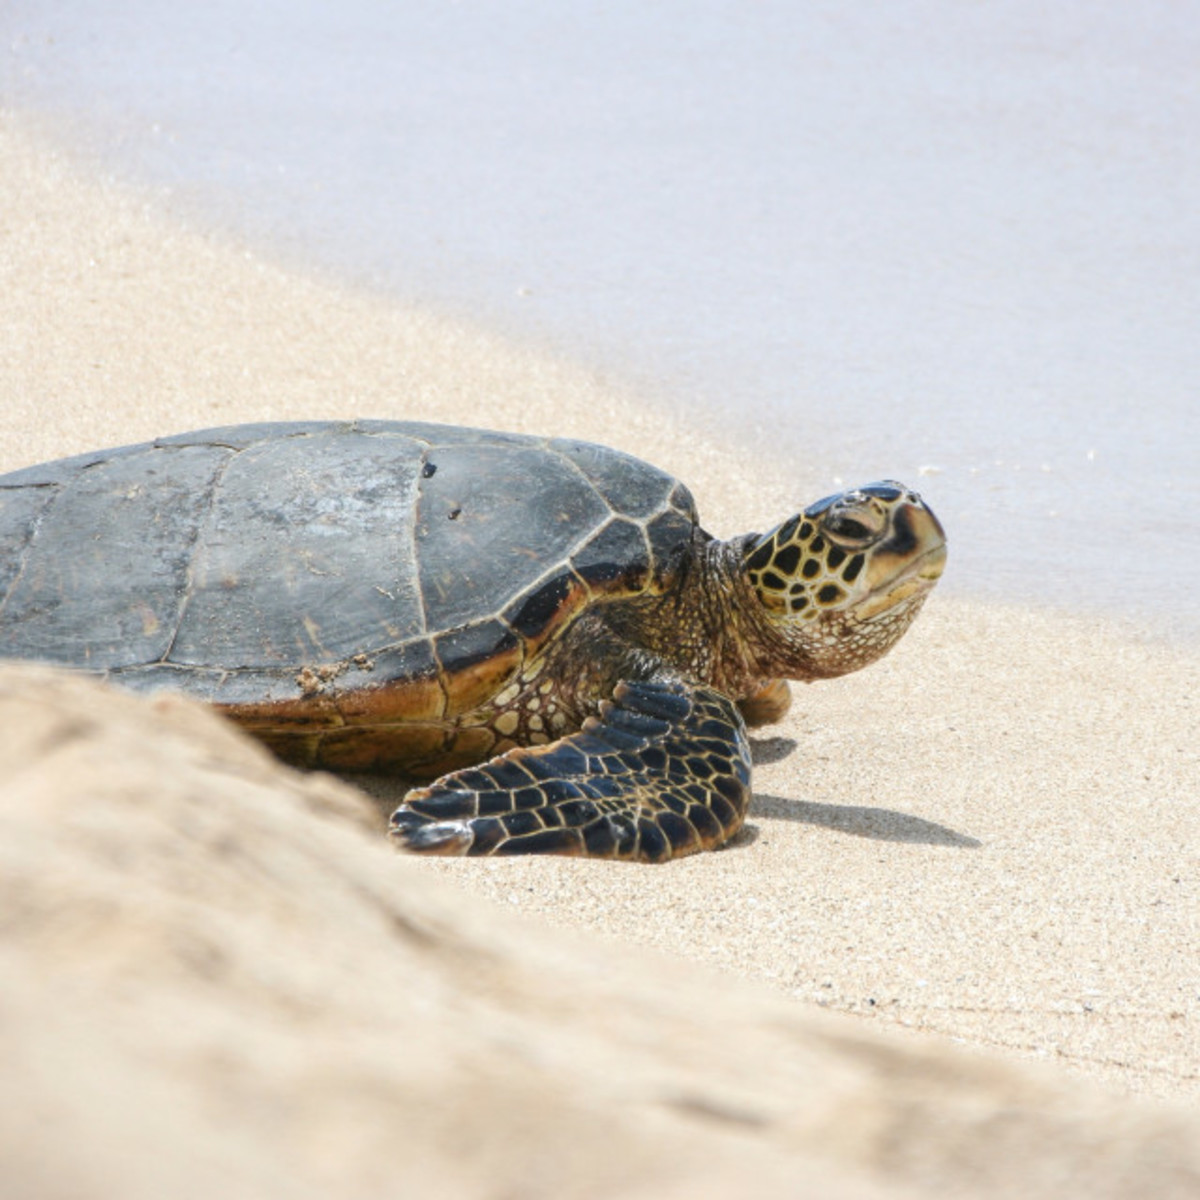 Even this poor turtle does not know how to talk to sand.